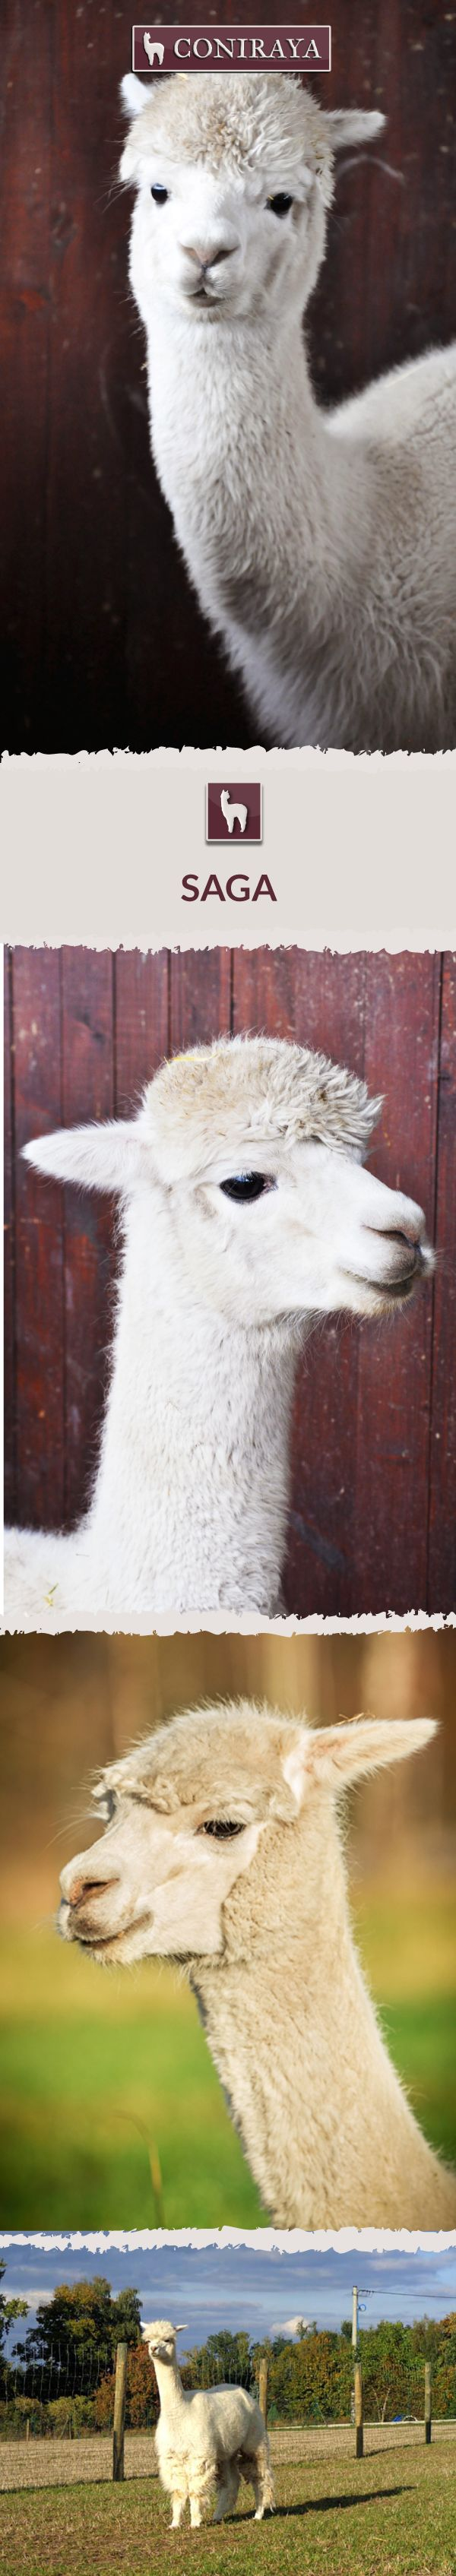 Meet Coniraya - Saga. This Alpaca was born in 2009 and its fiber is in color: White. Check out more details on our site!